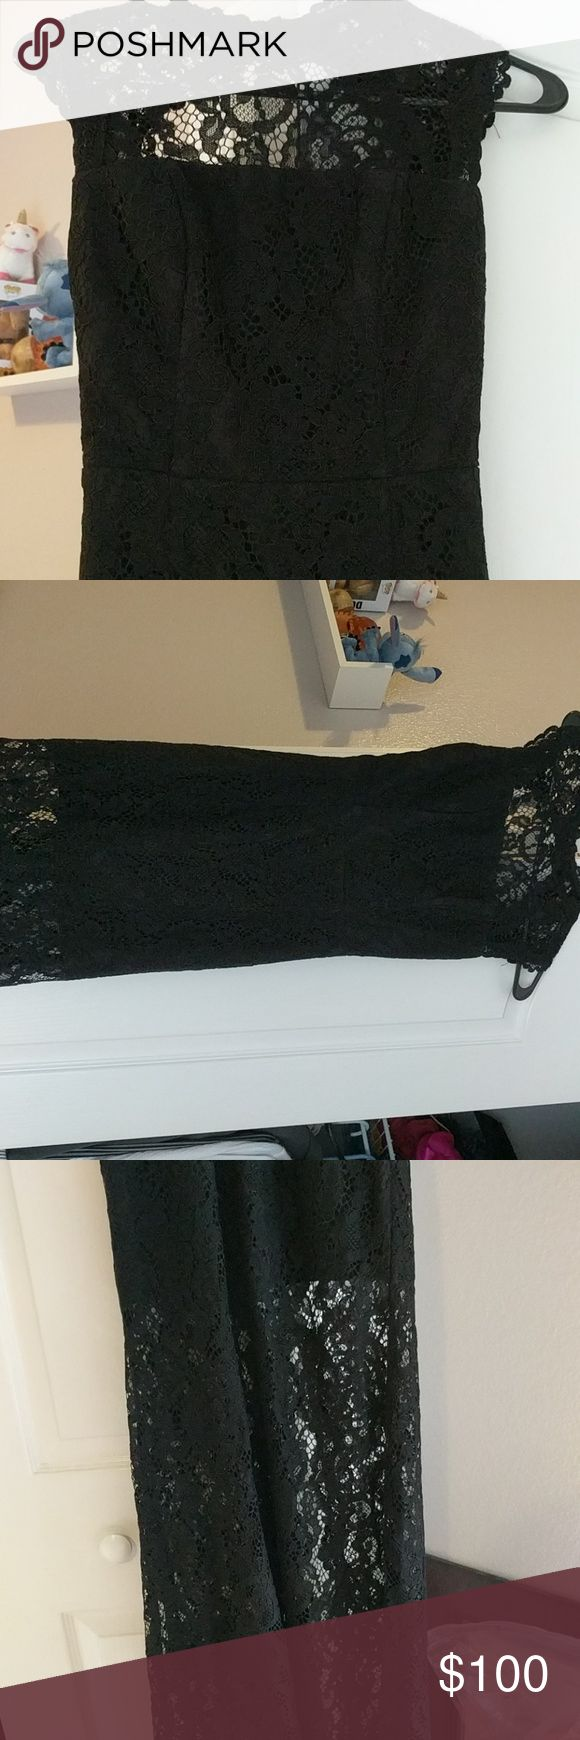 Jarlo London formal dress Long lace formal gown. High neck line, open back. Still has the tags. Size 6 ASOS Petite Dresses